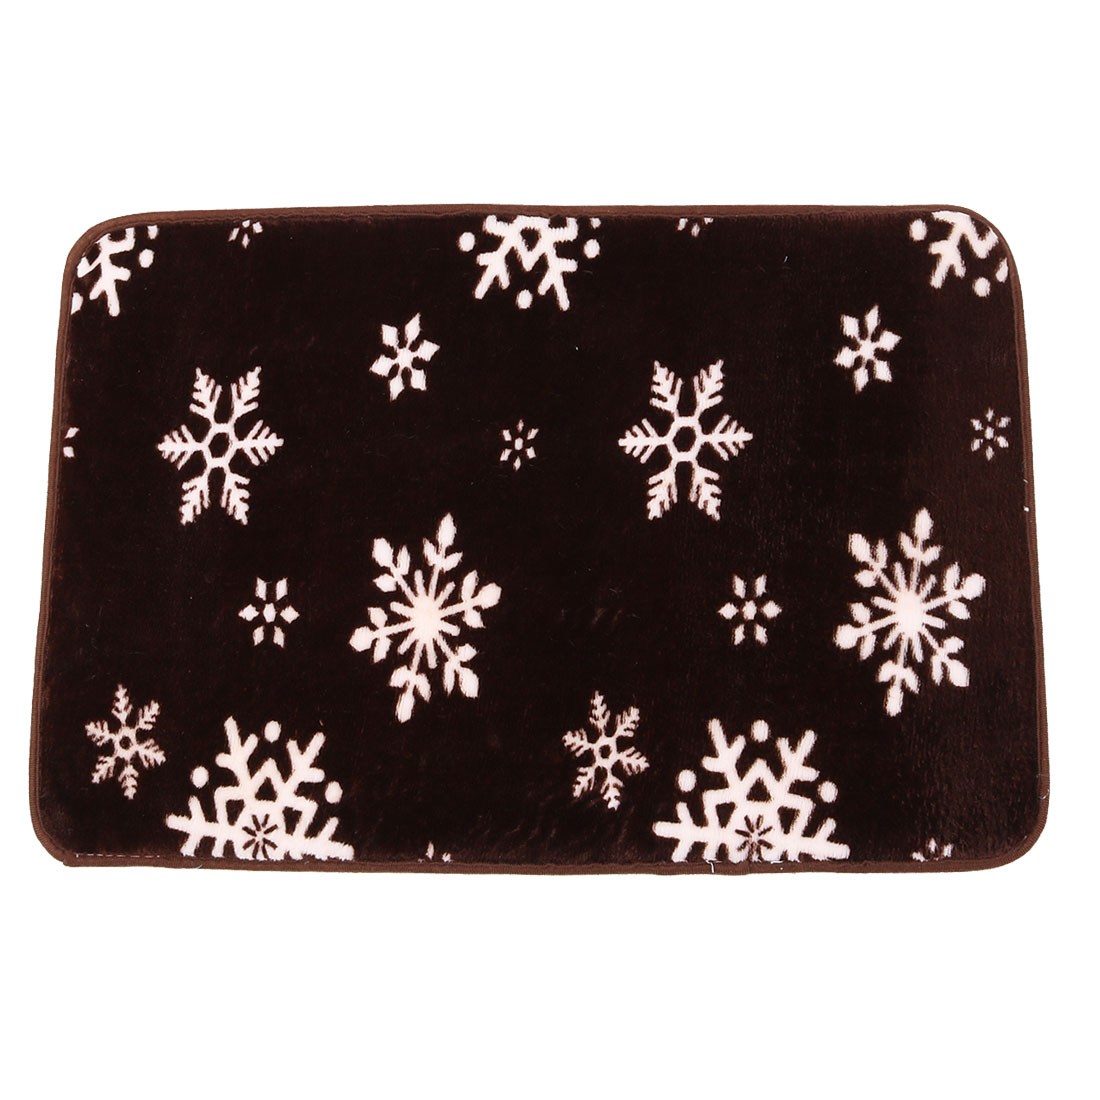 Household Coral Fleece Snowflake Print Rectangle Washable Floor Carpet Rug Pad Doormat 60 x 40cm